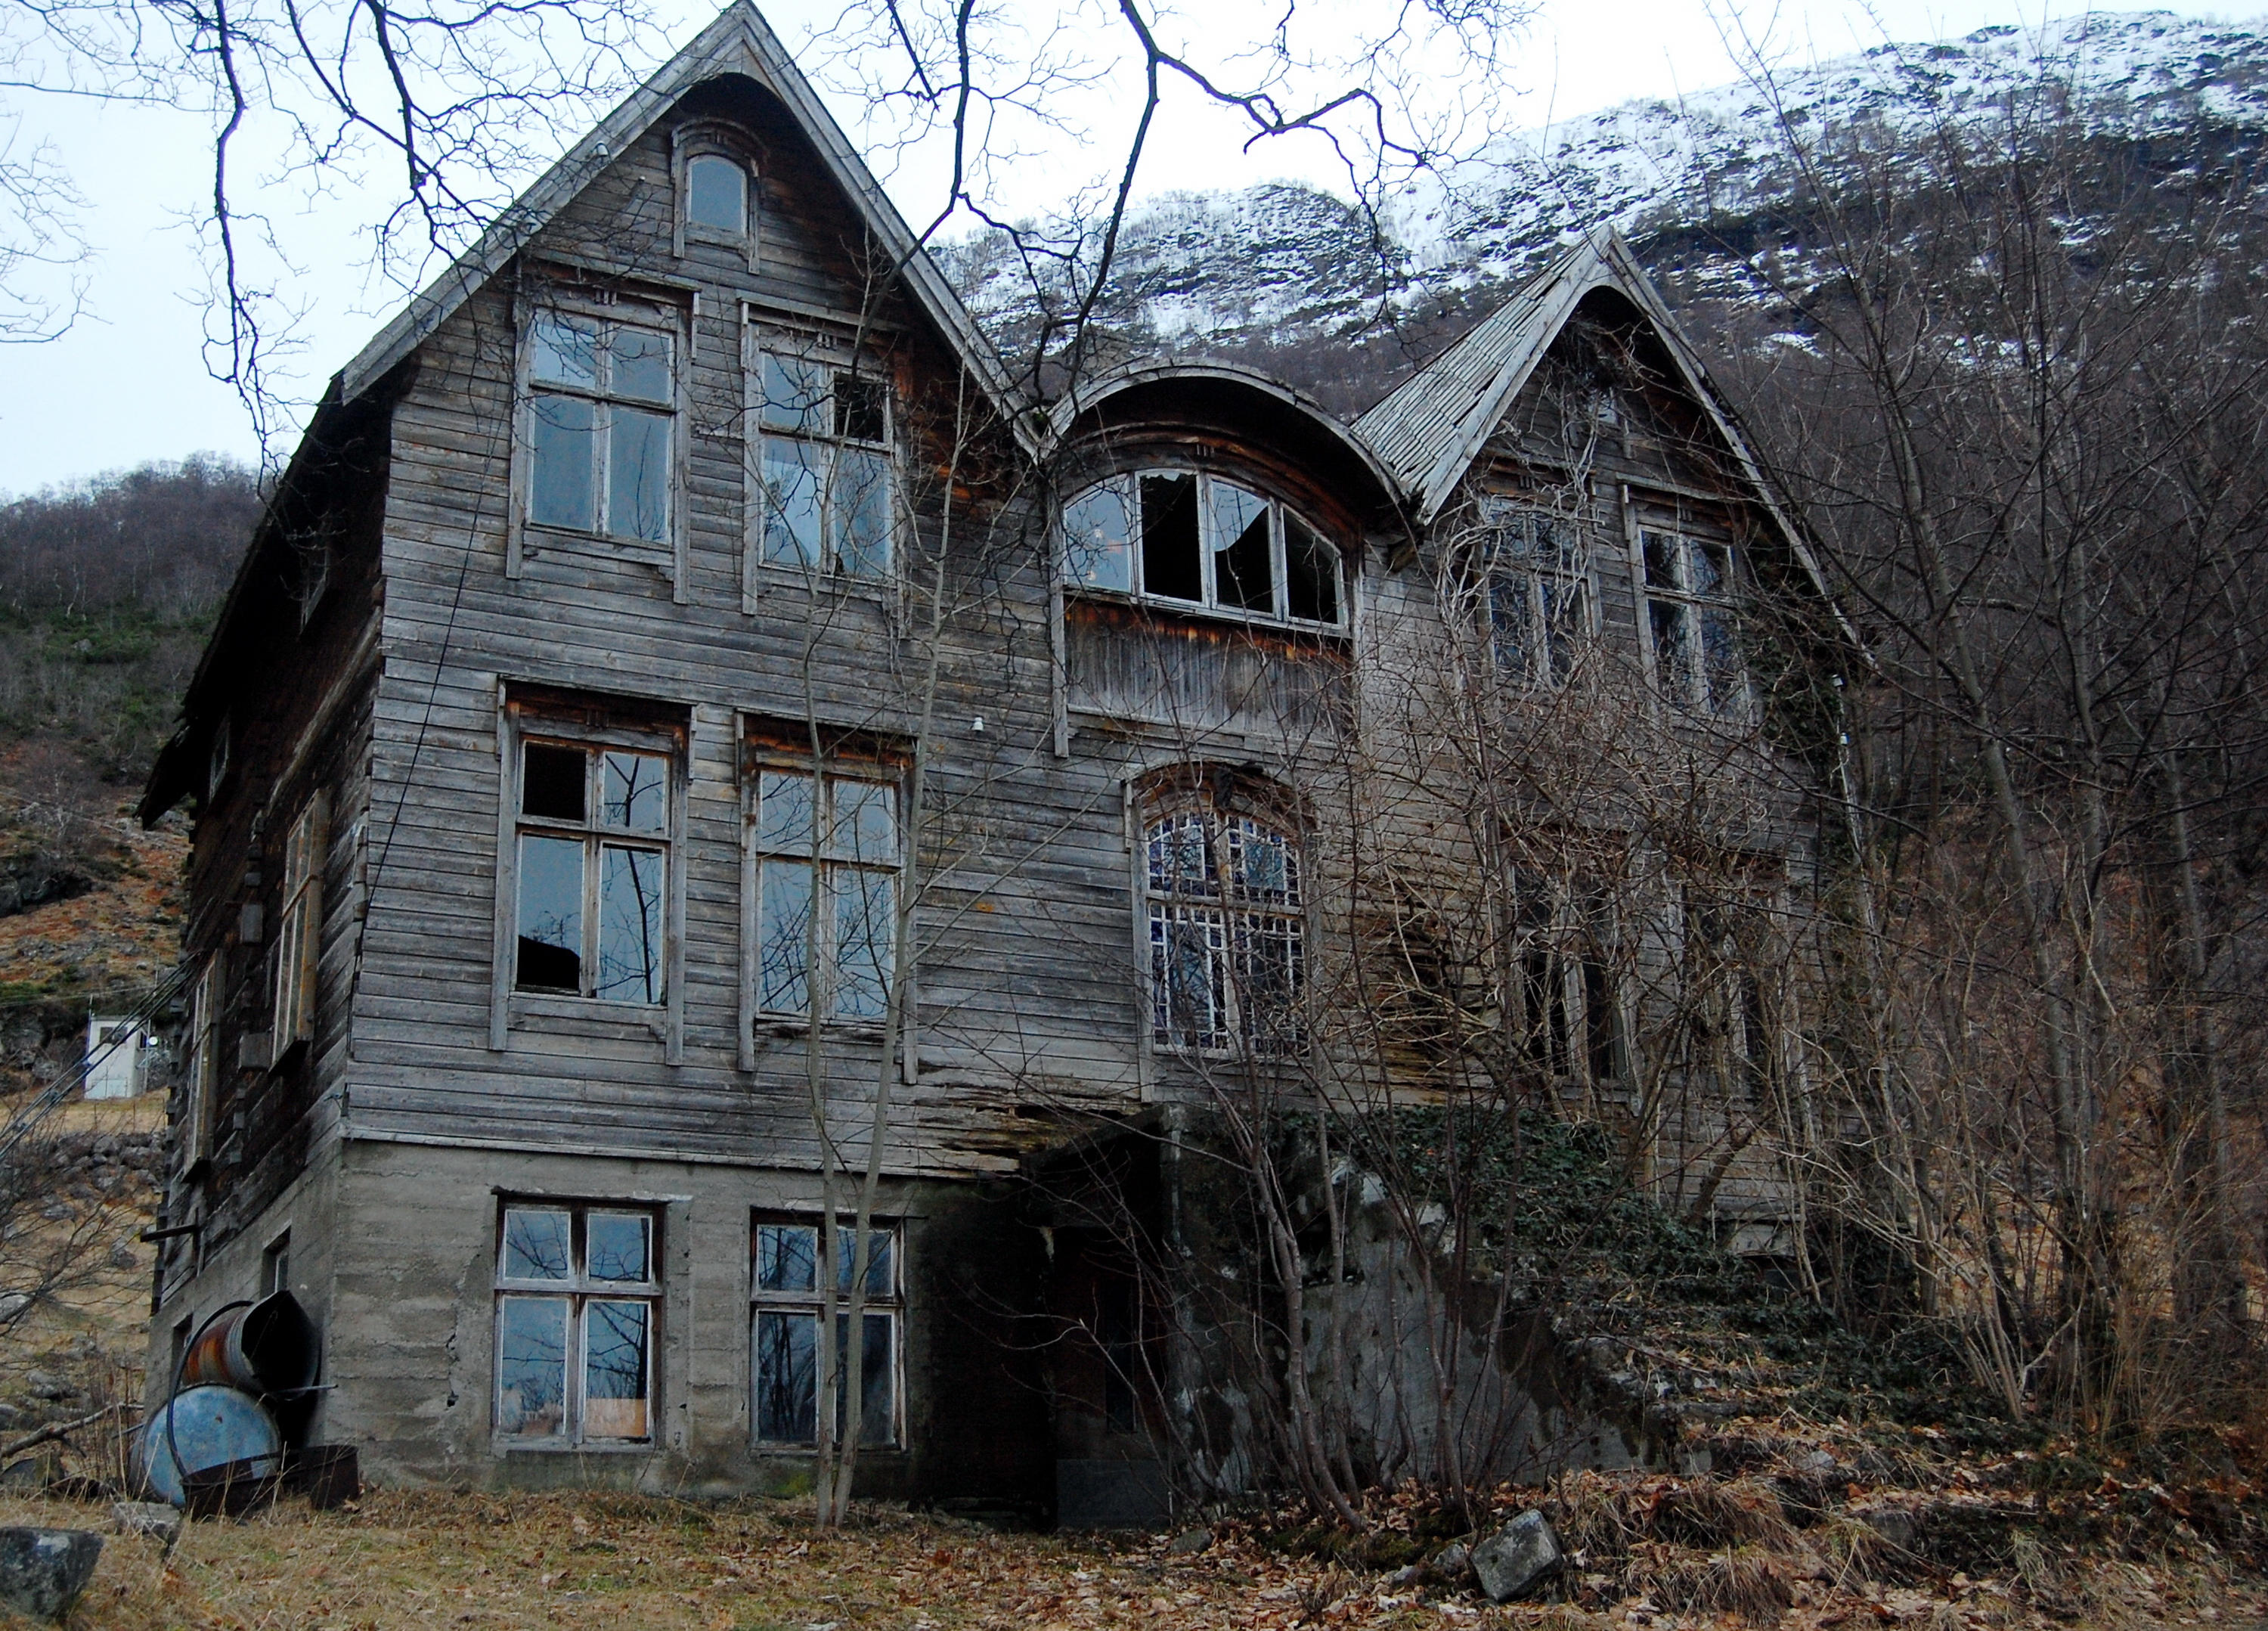 I Love Spooky Old Houses